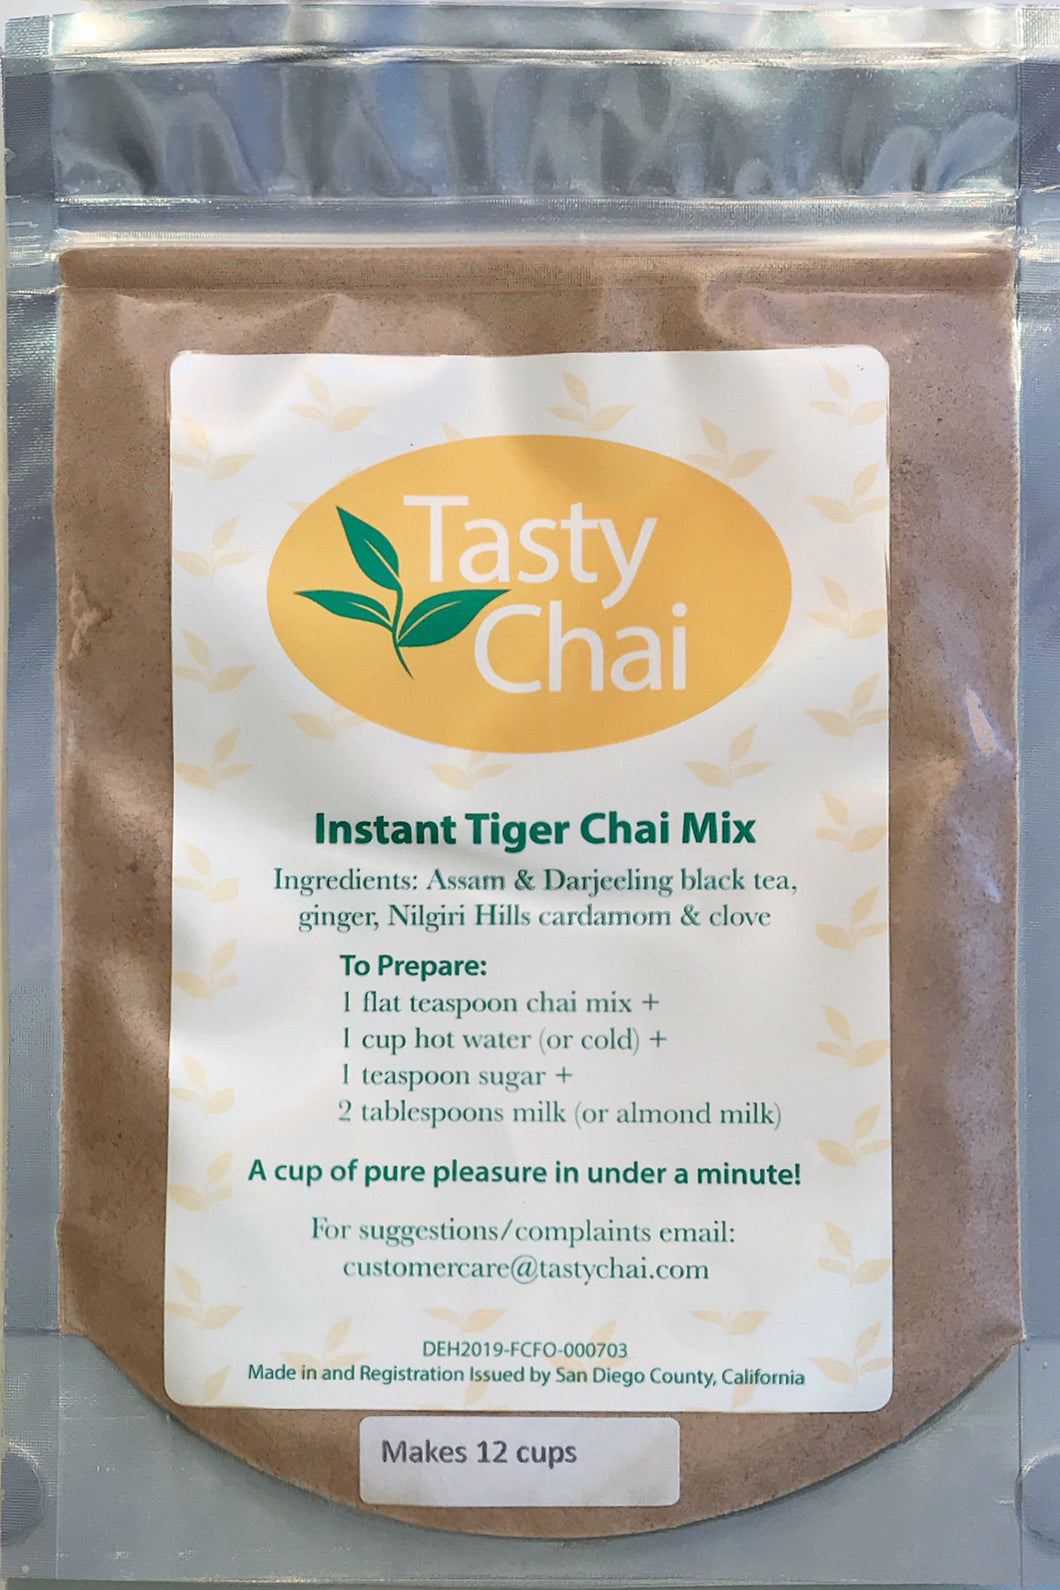 Tasty Chai's Tiger Chai 12 cup pack